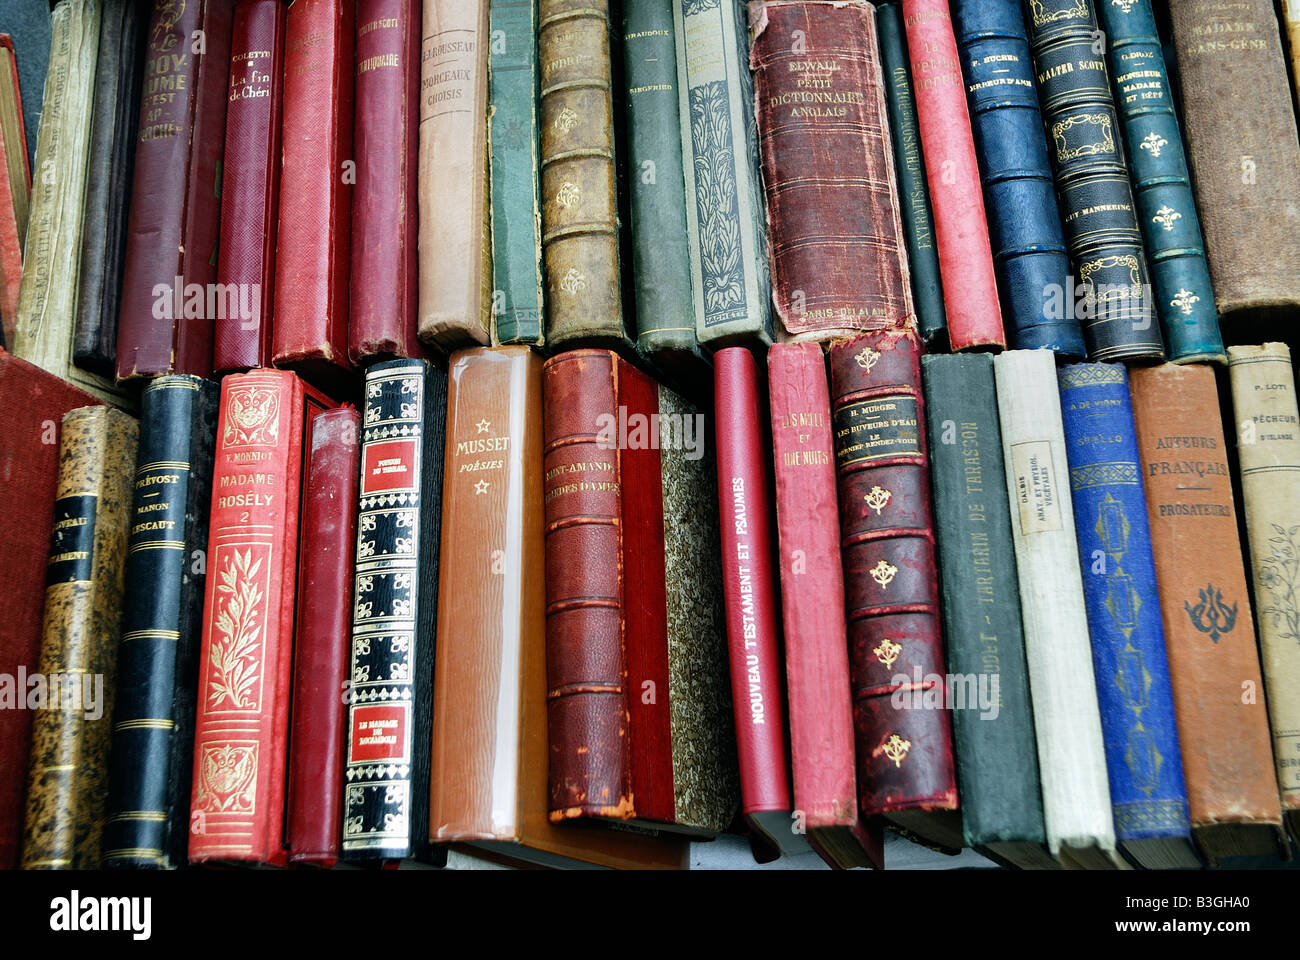 Paris France, Shopping 'Flea Market' Collectible 'French Language' Books on Display in 'Public - Stock Image